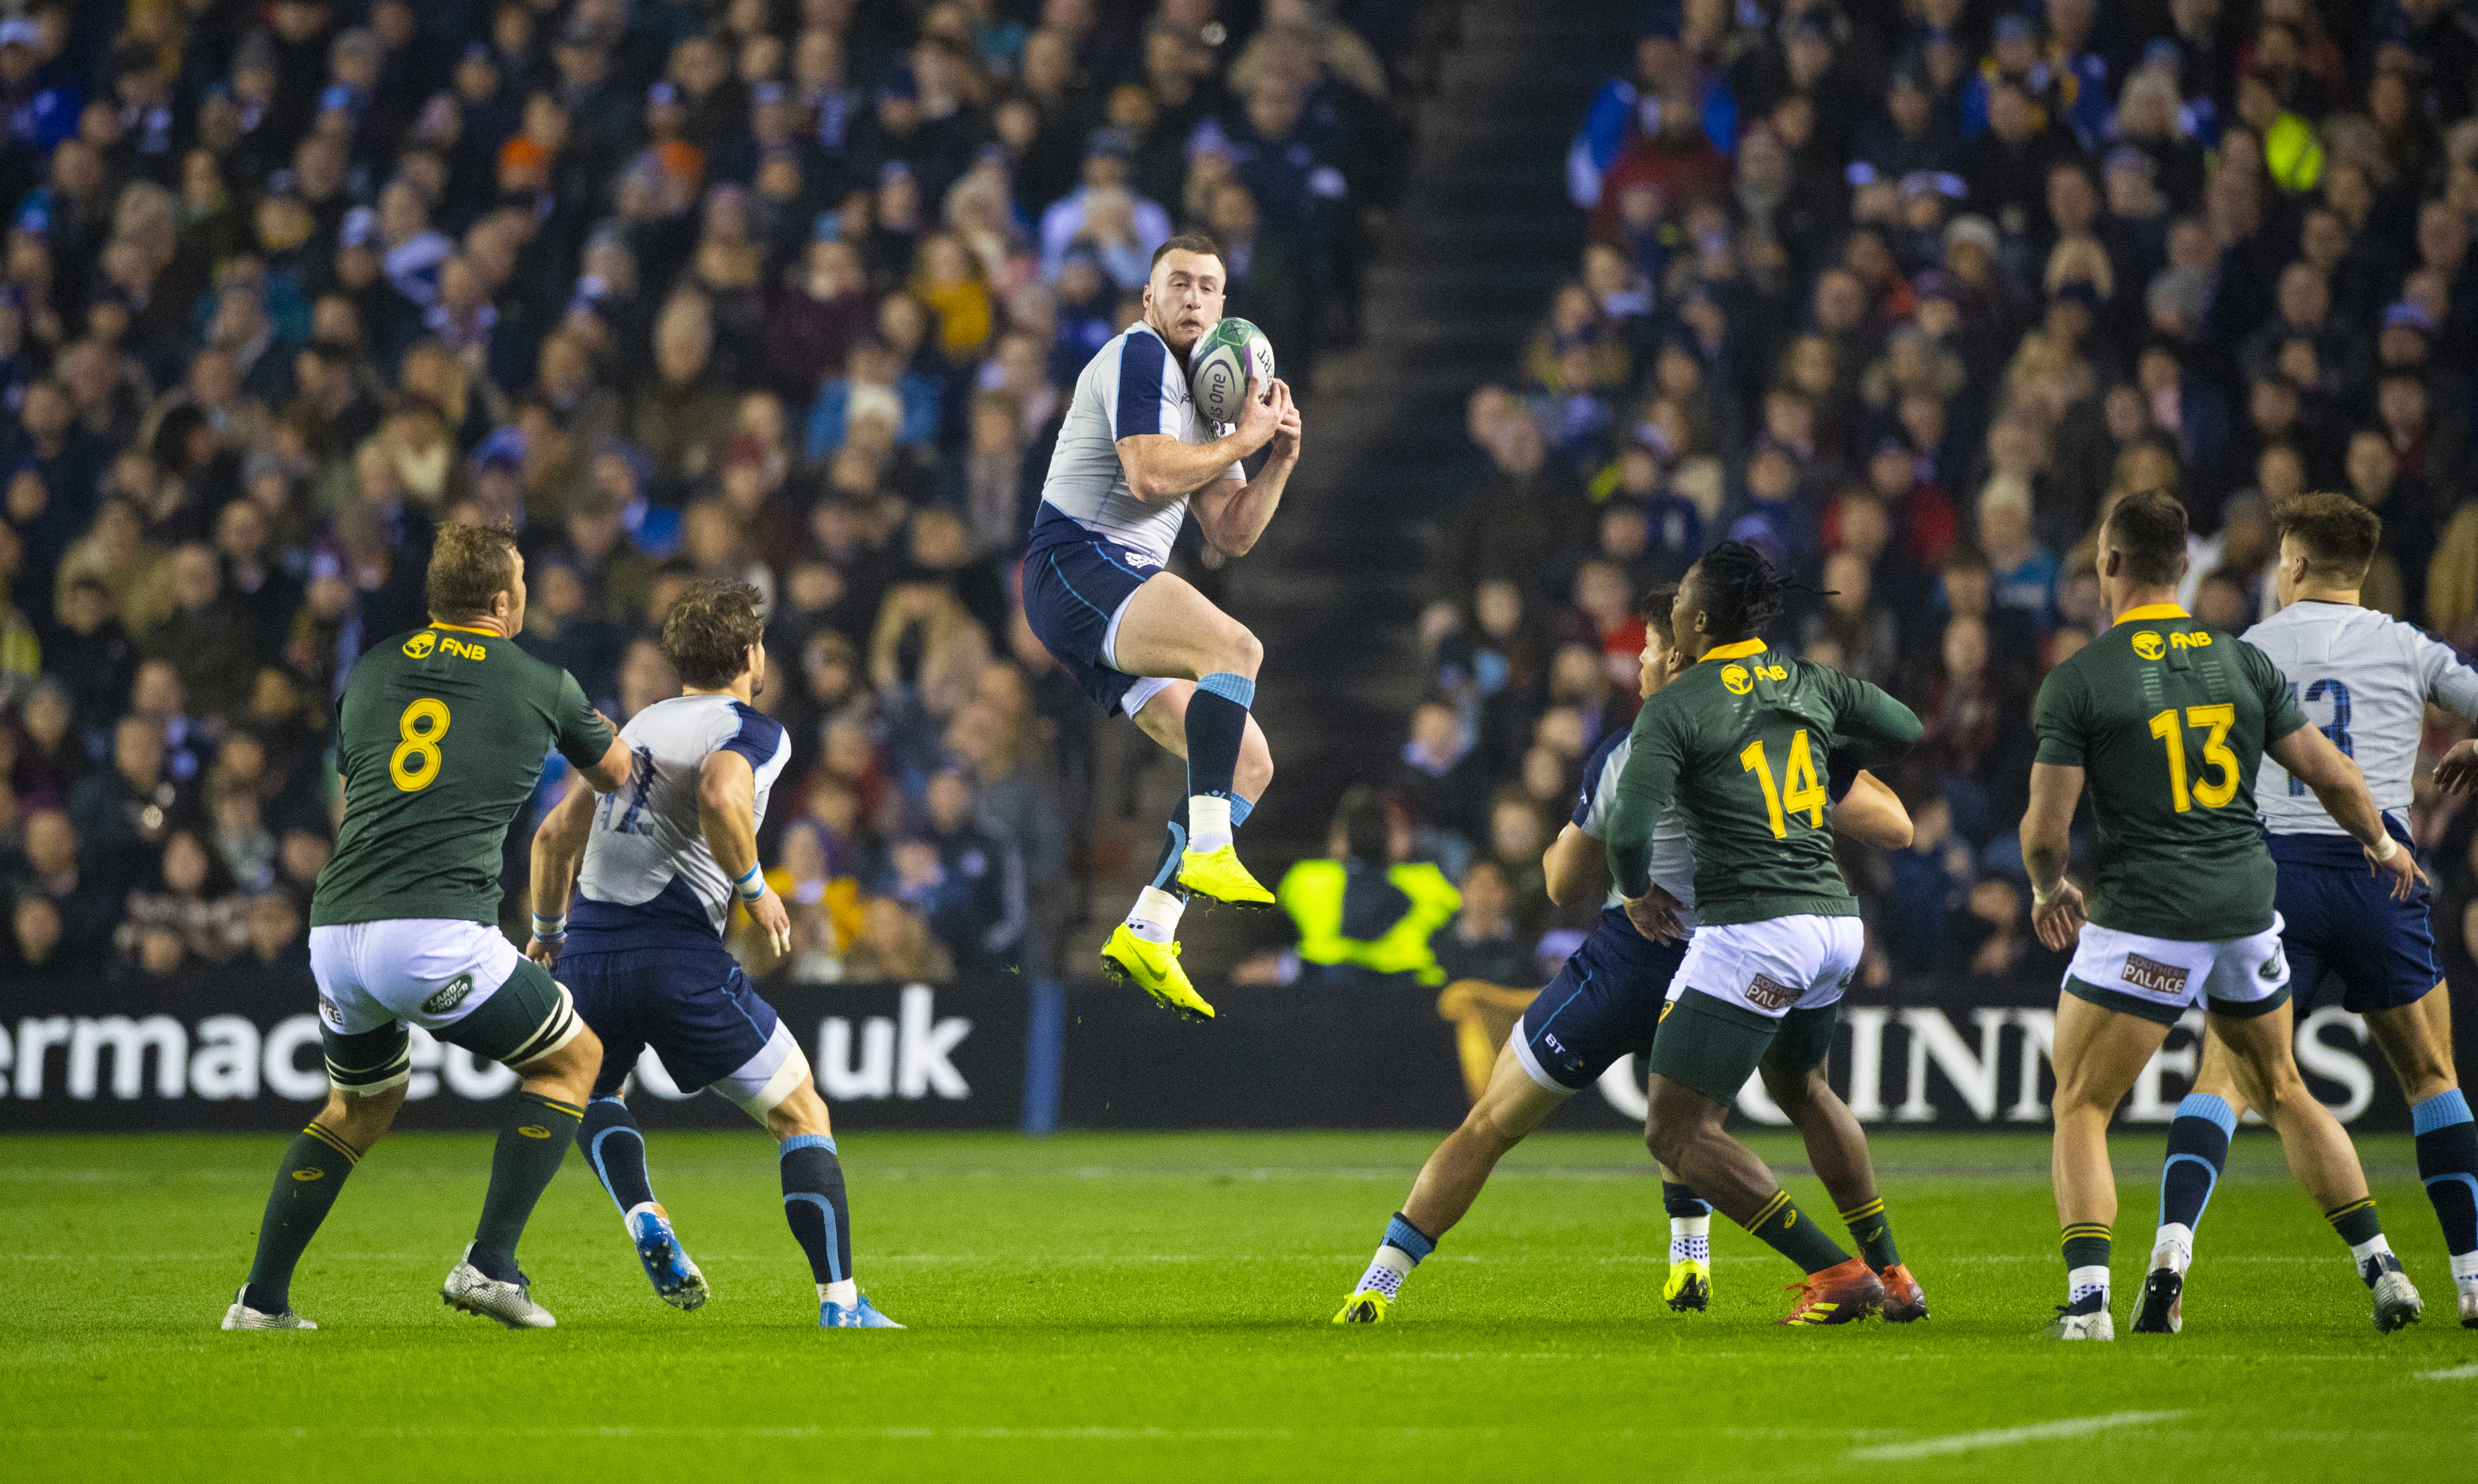 Stuart Hogg take a high ball during Saturday's game against the Springboks.